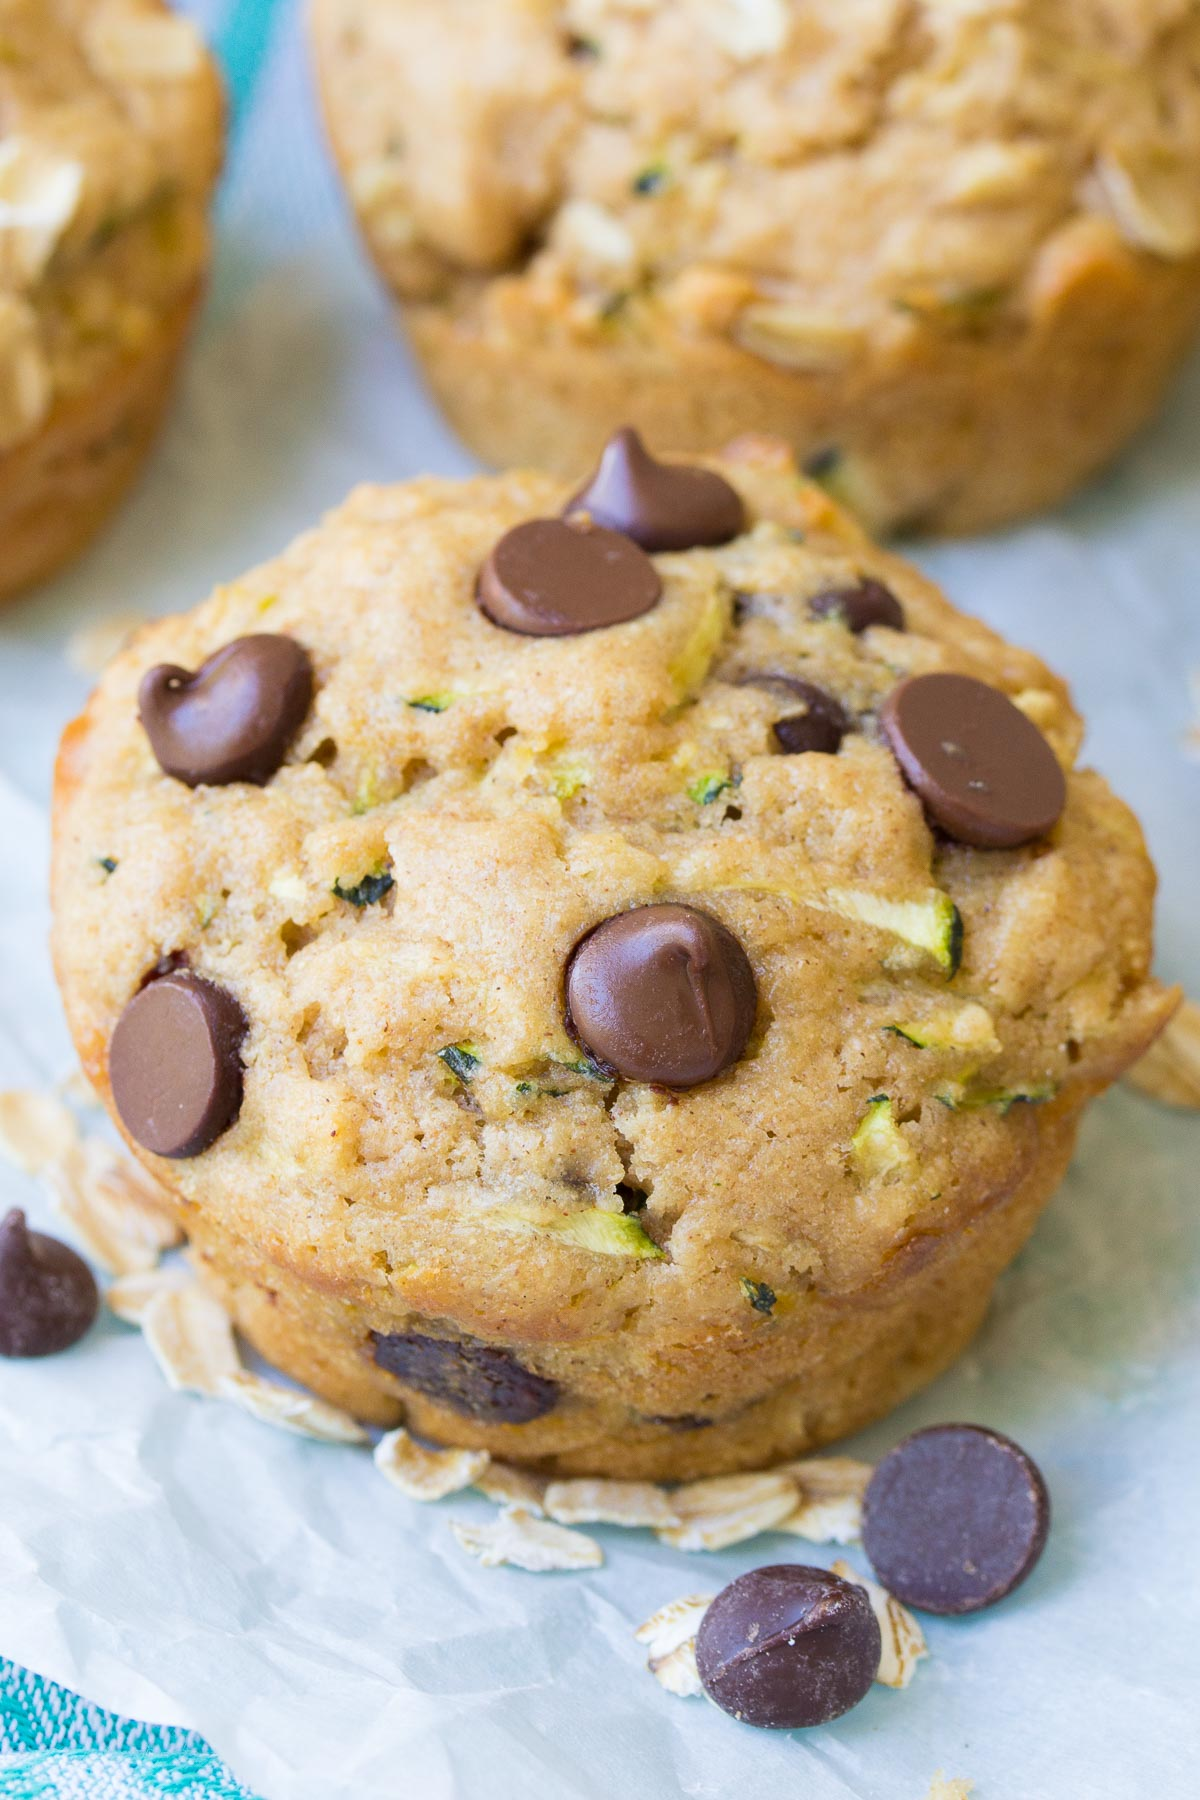 Close up of a muffin after baking, with chocolate chips around.